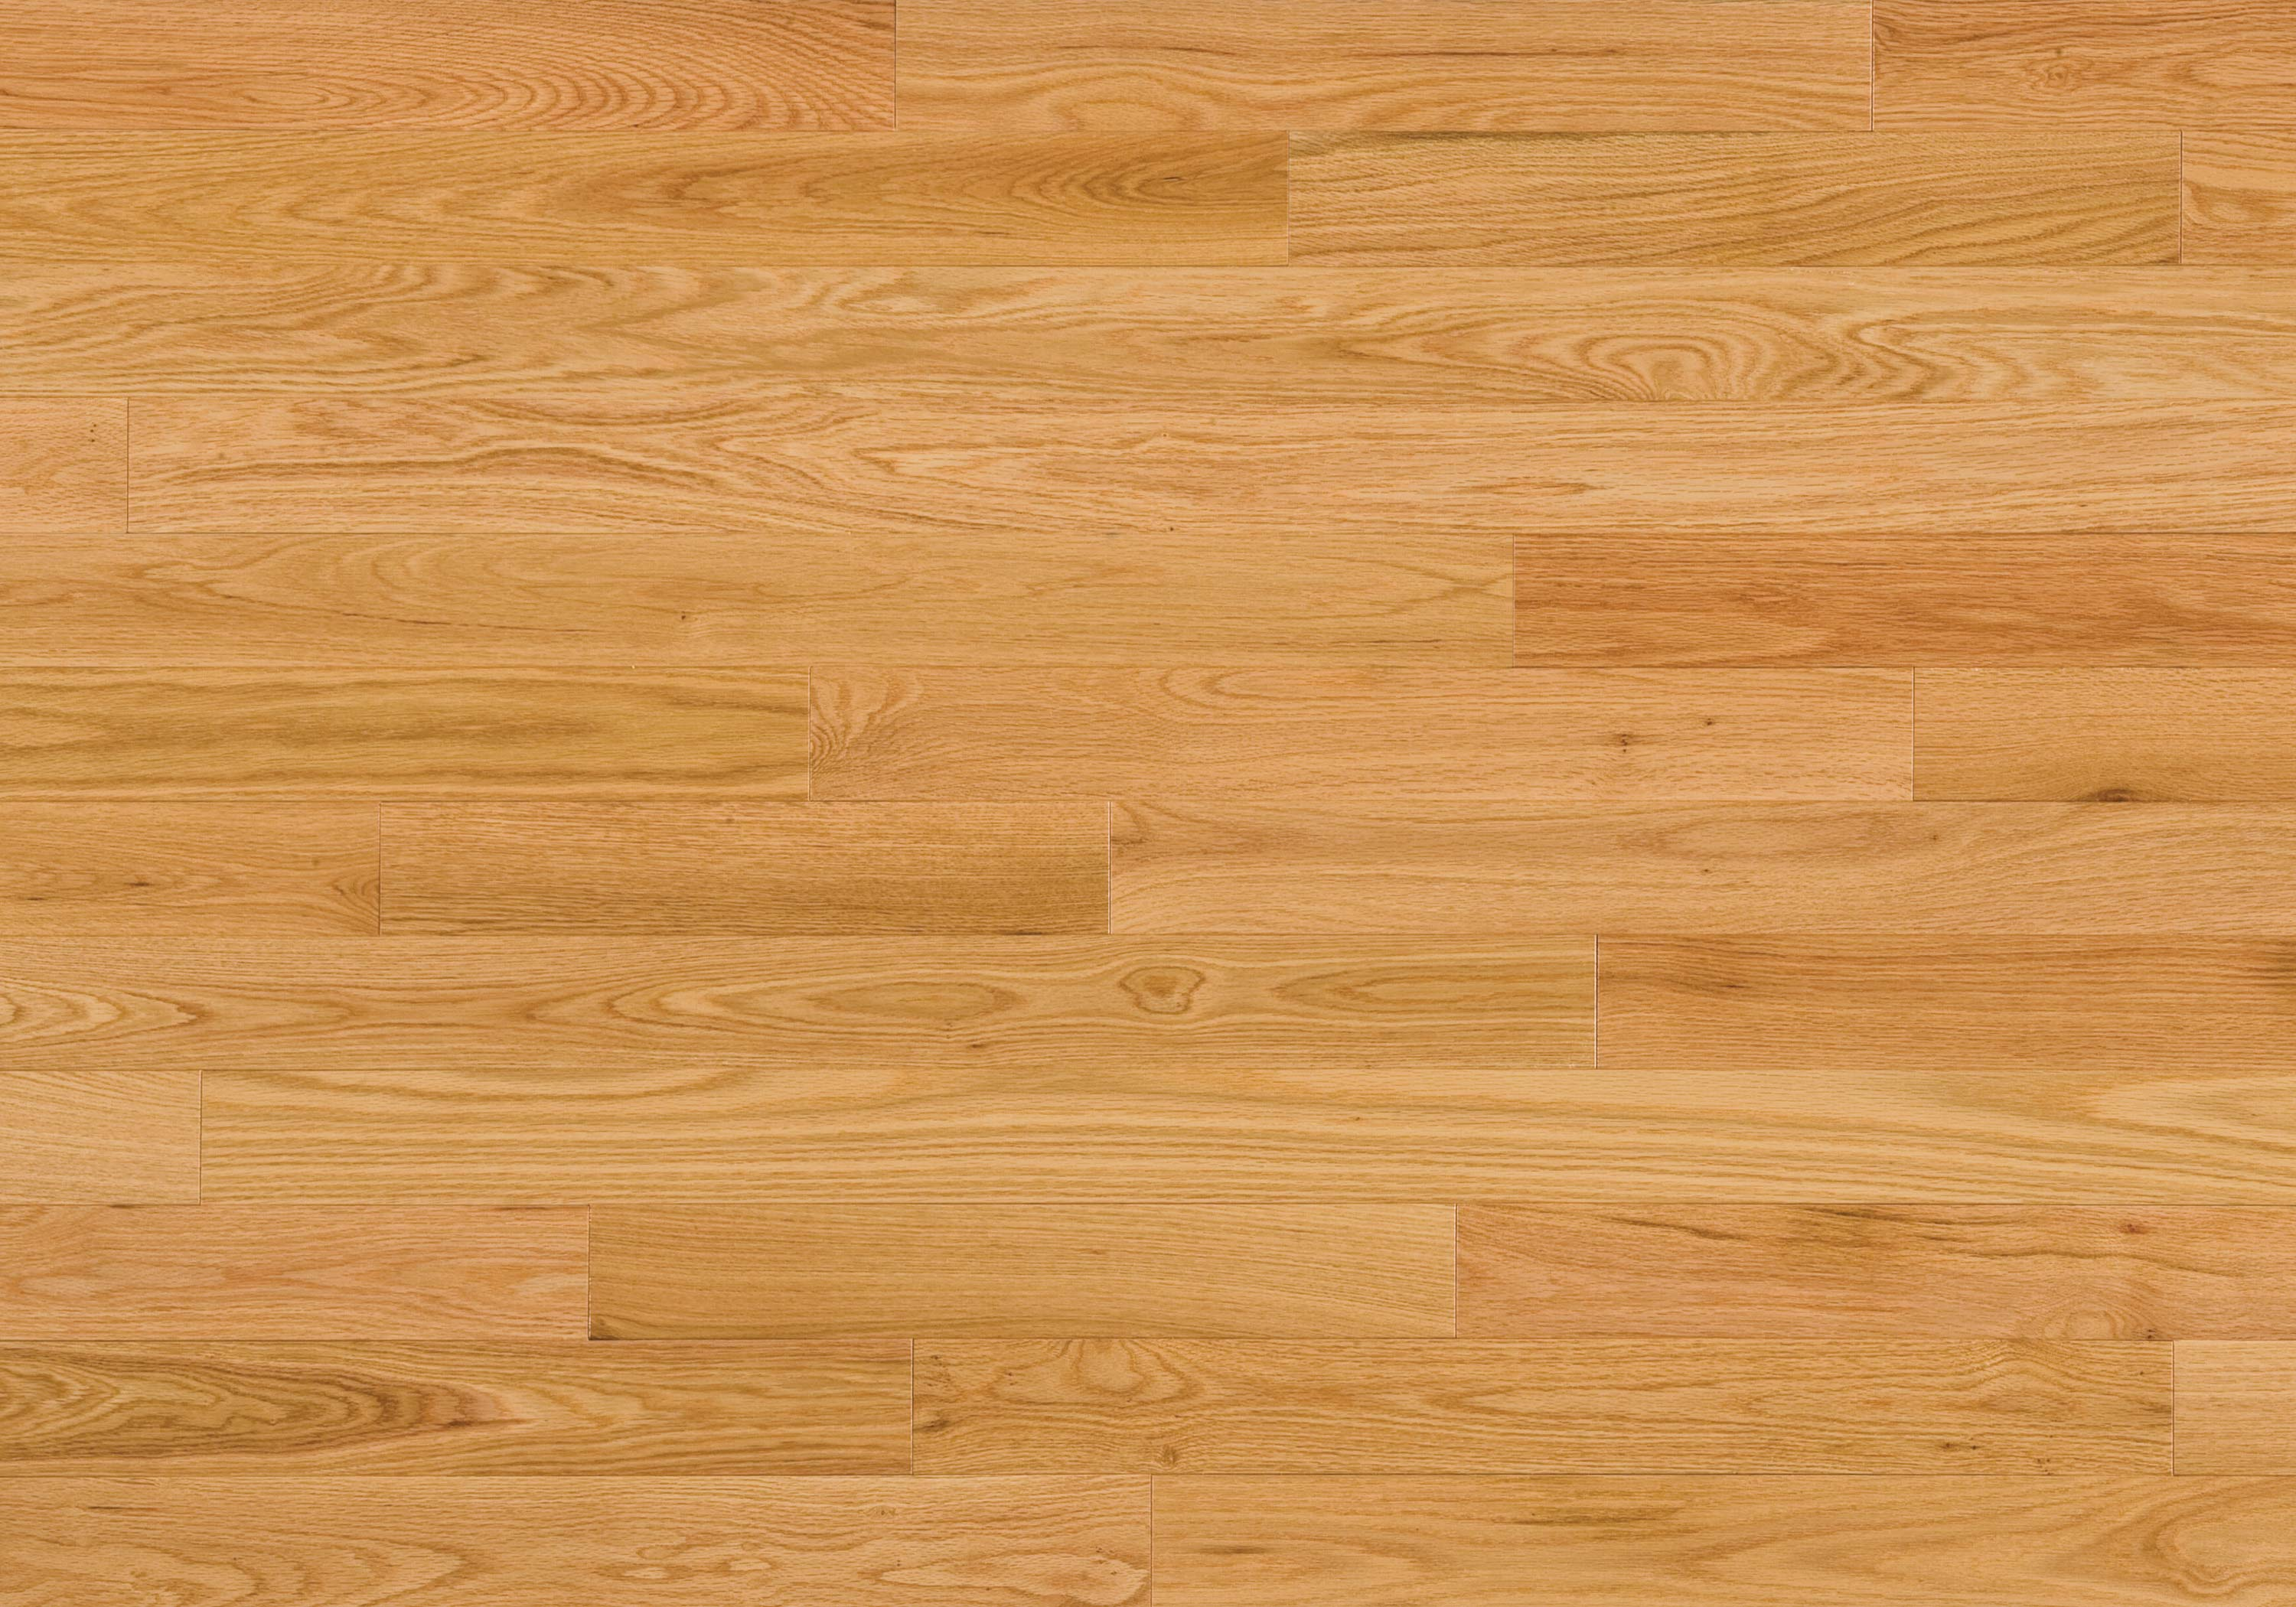 Red oak hardwood flooring natural select better natural for Natural red oak floors